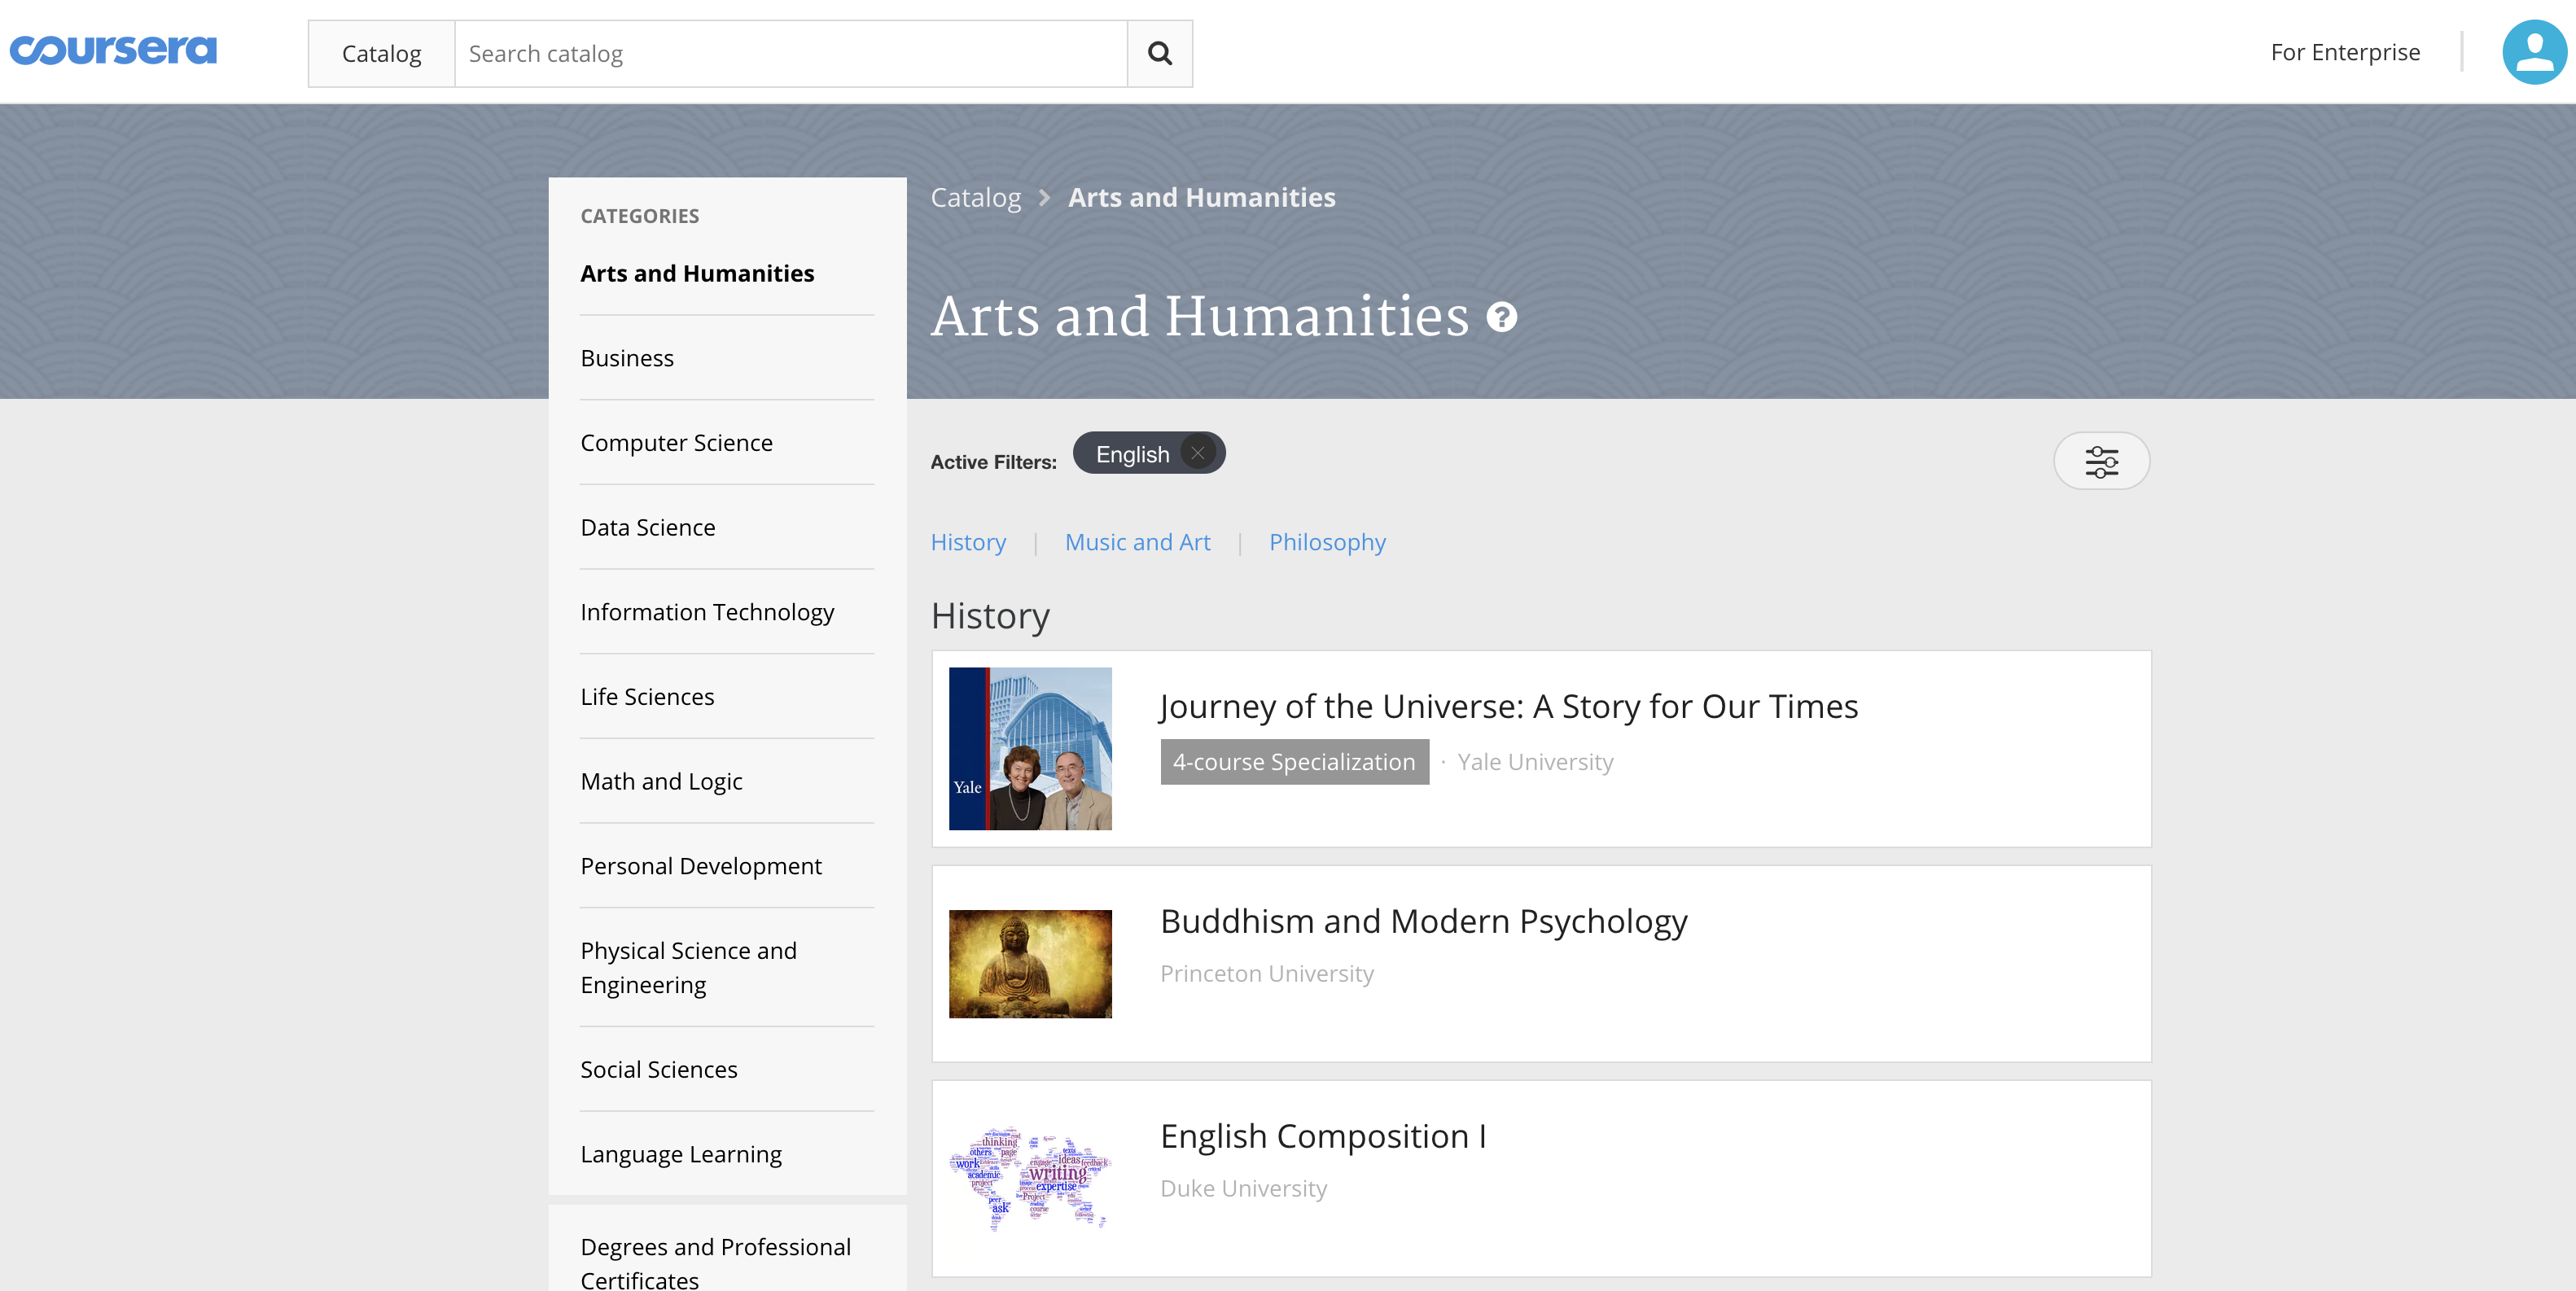 screencap of Coursera's catalog with Arts and Humanities courses featured